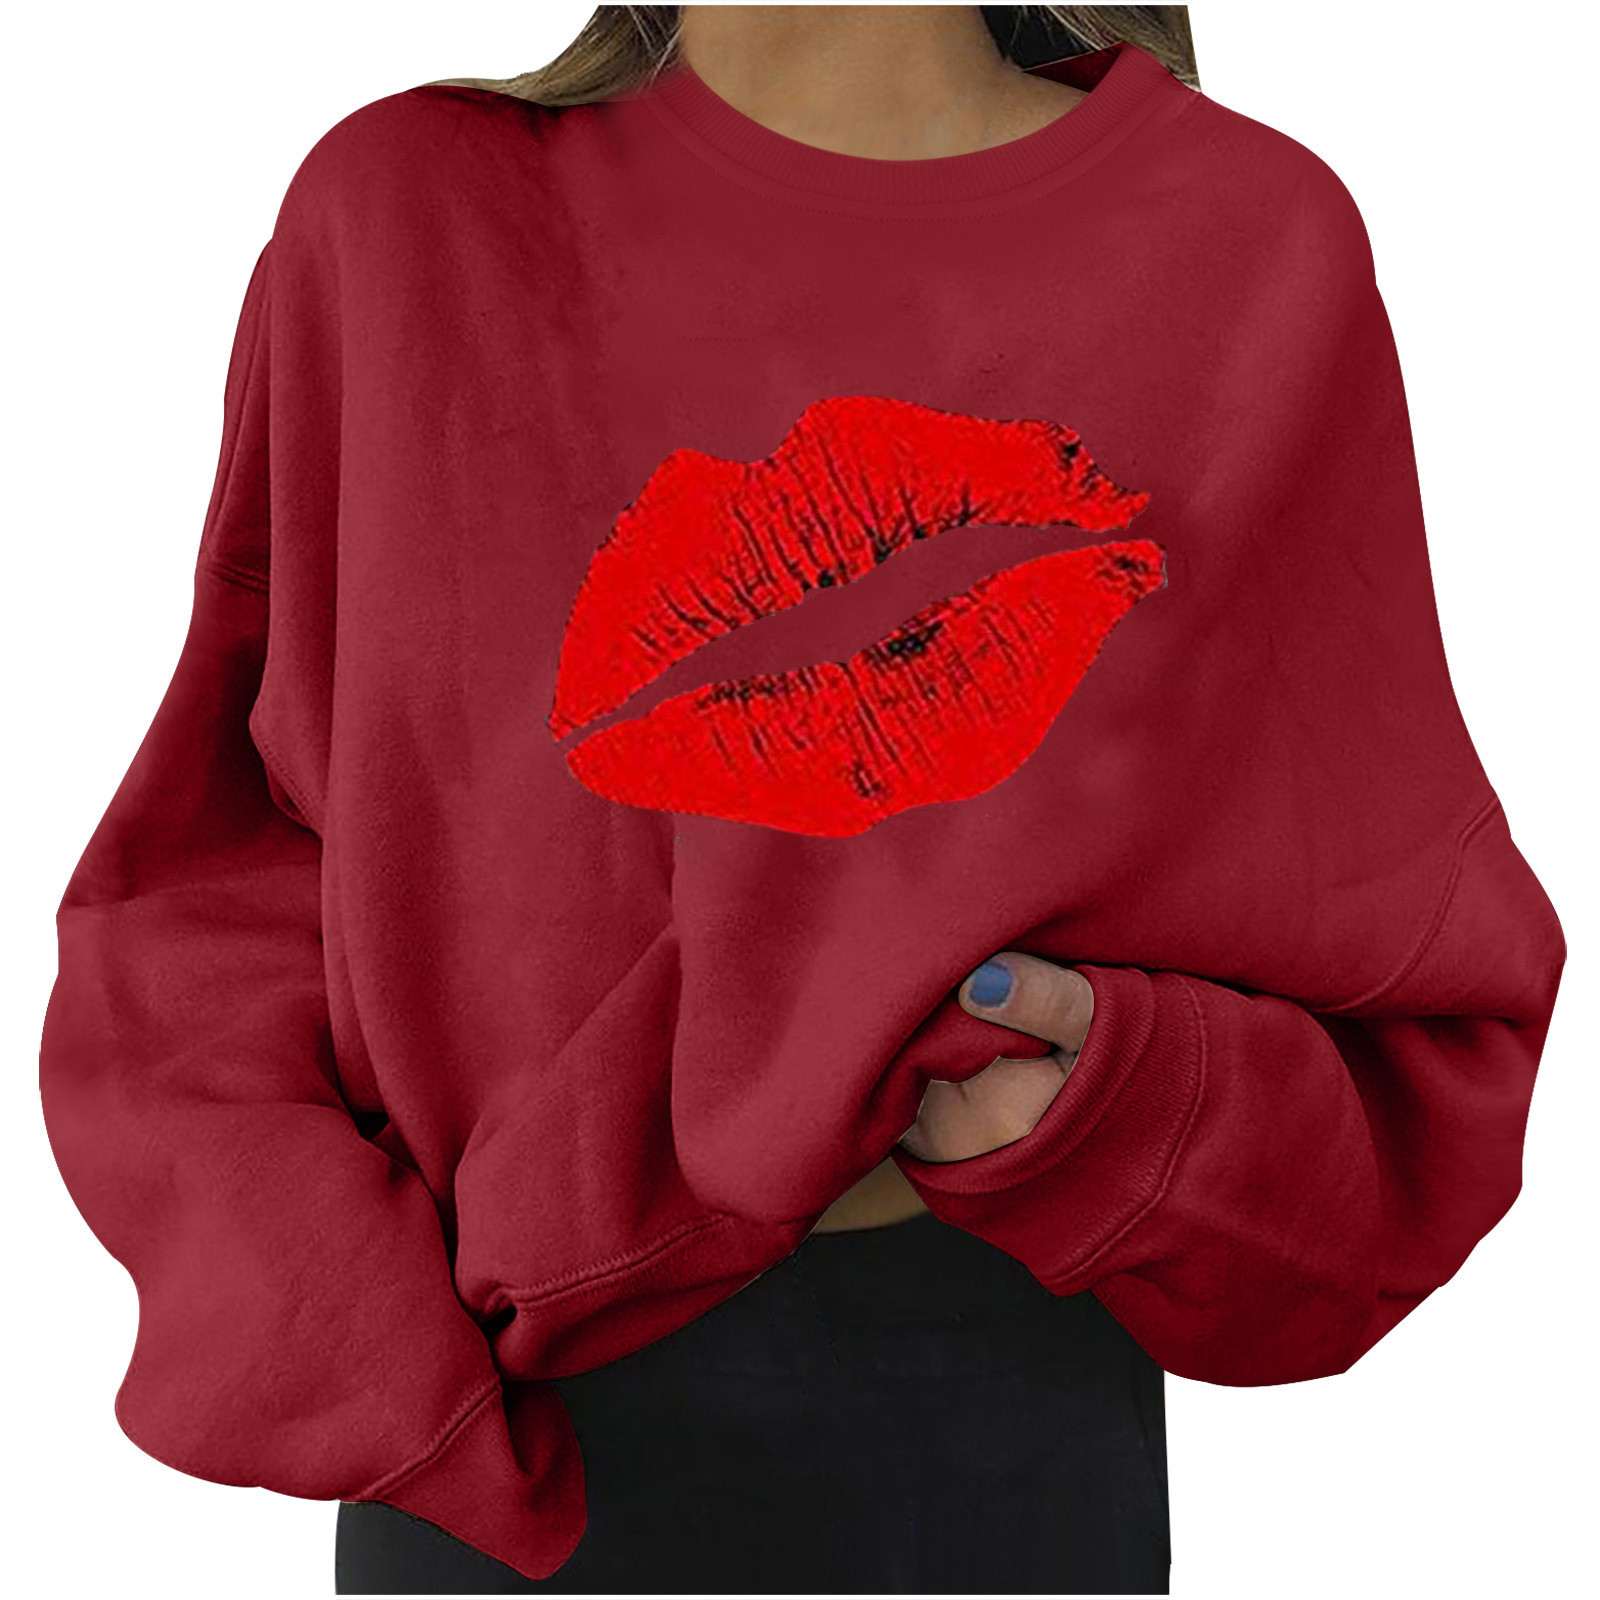 4# Women Plus Size Sweaters Long Sleeve Color Block Lip Print Straples Collar Sweaters Top Autumn Spring Pullover Свитер Женский